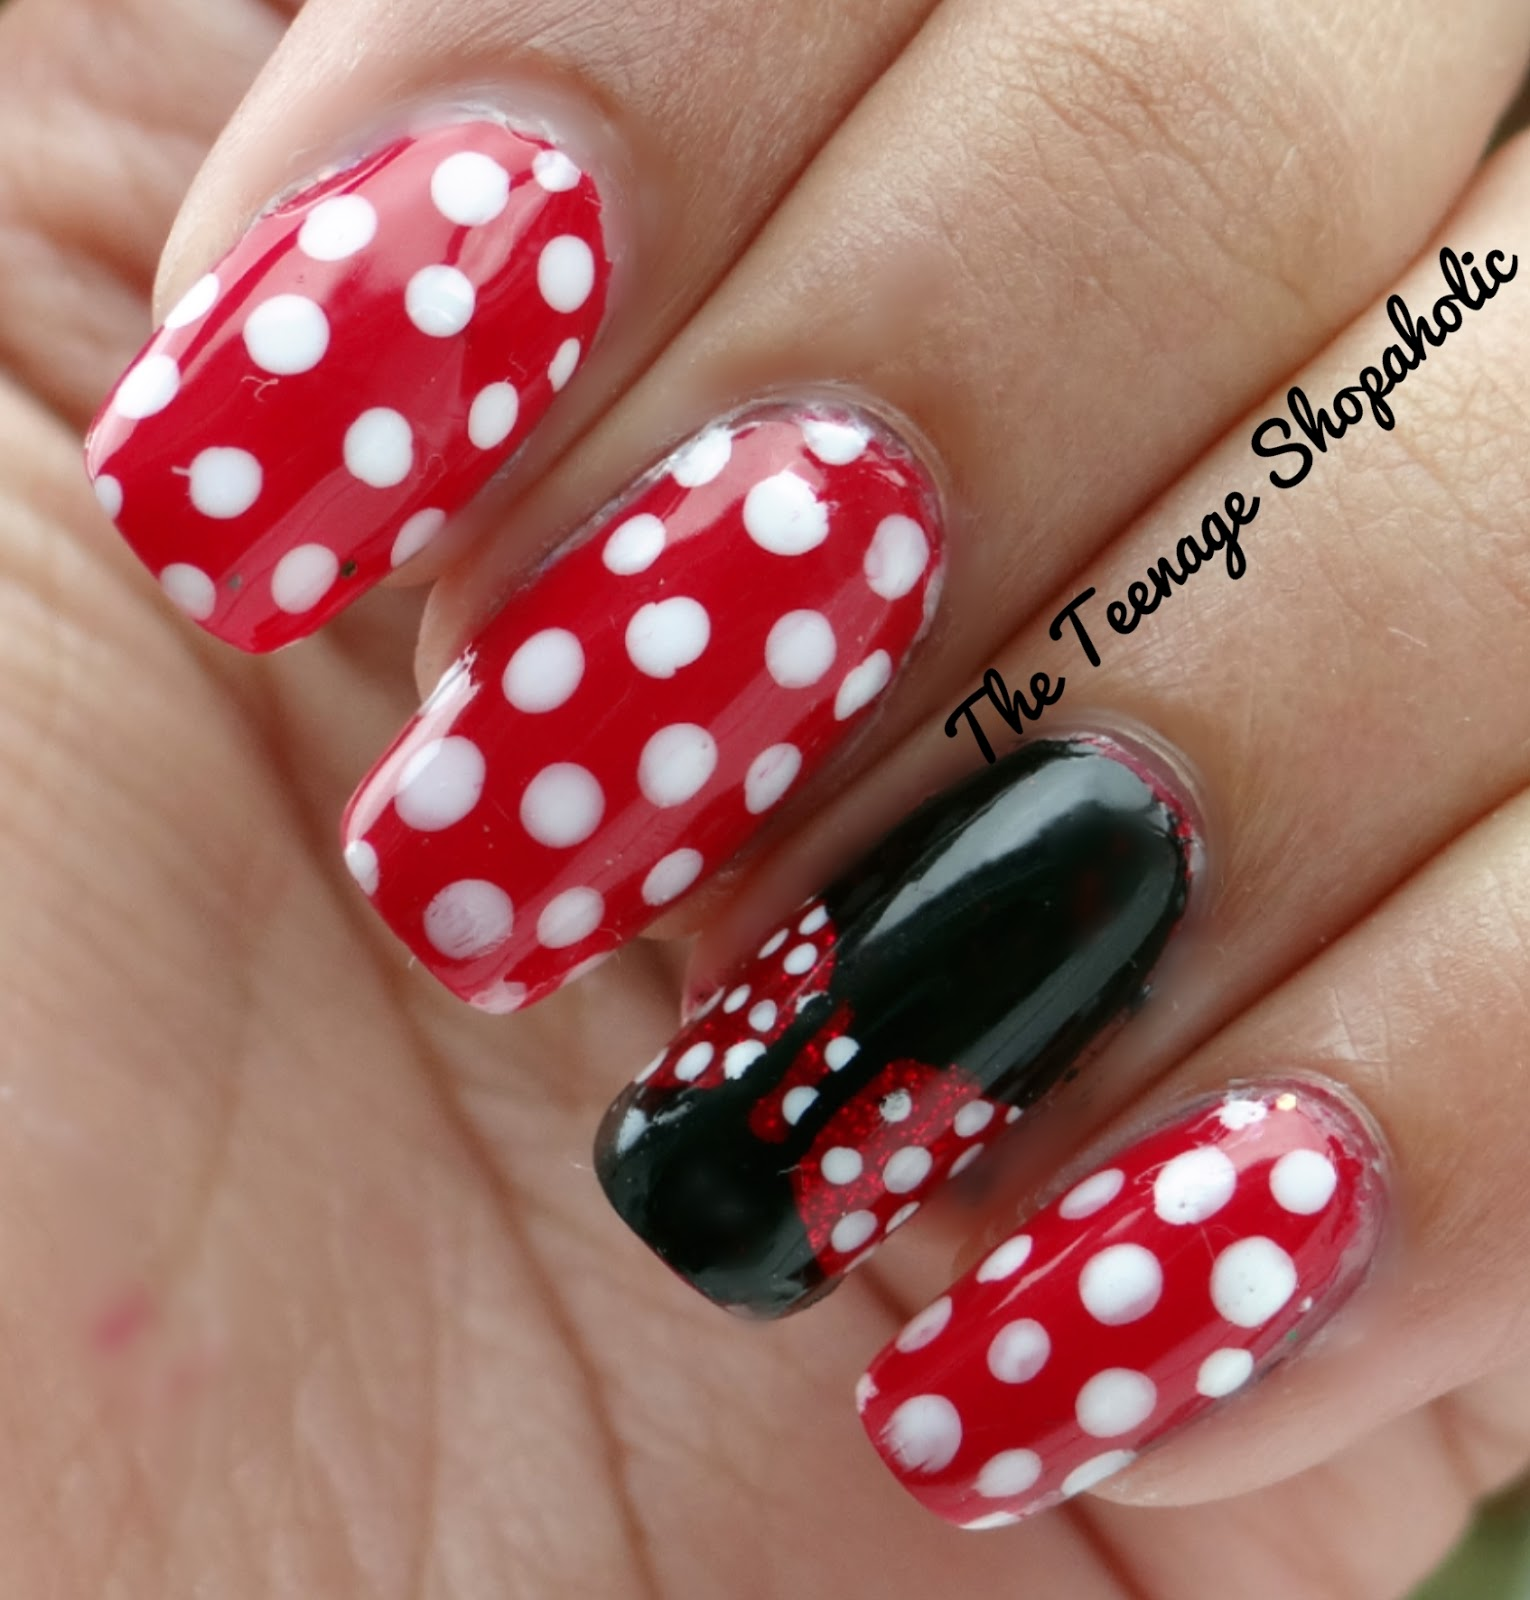 ... Mickey Mouse Nails on Pinterest Disney Nails Art Mickey - minnie mouse  nail art designs ... - Minnie Mouse Nail Art Designs